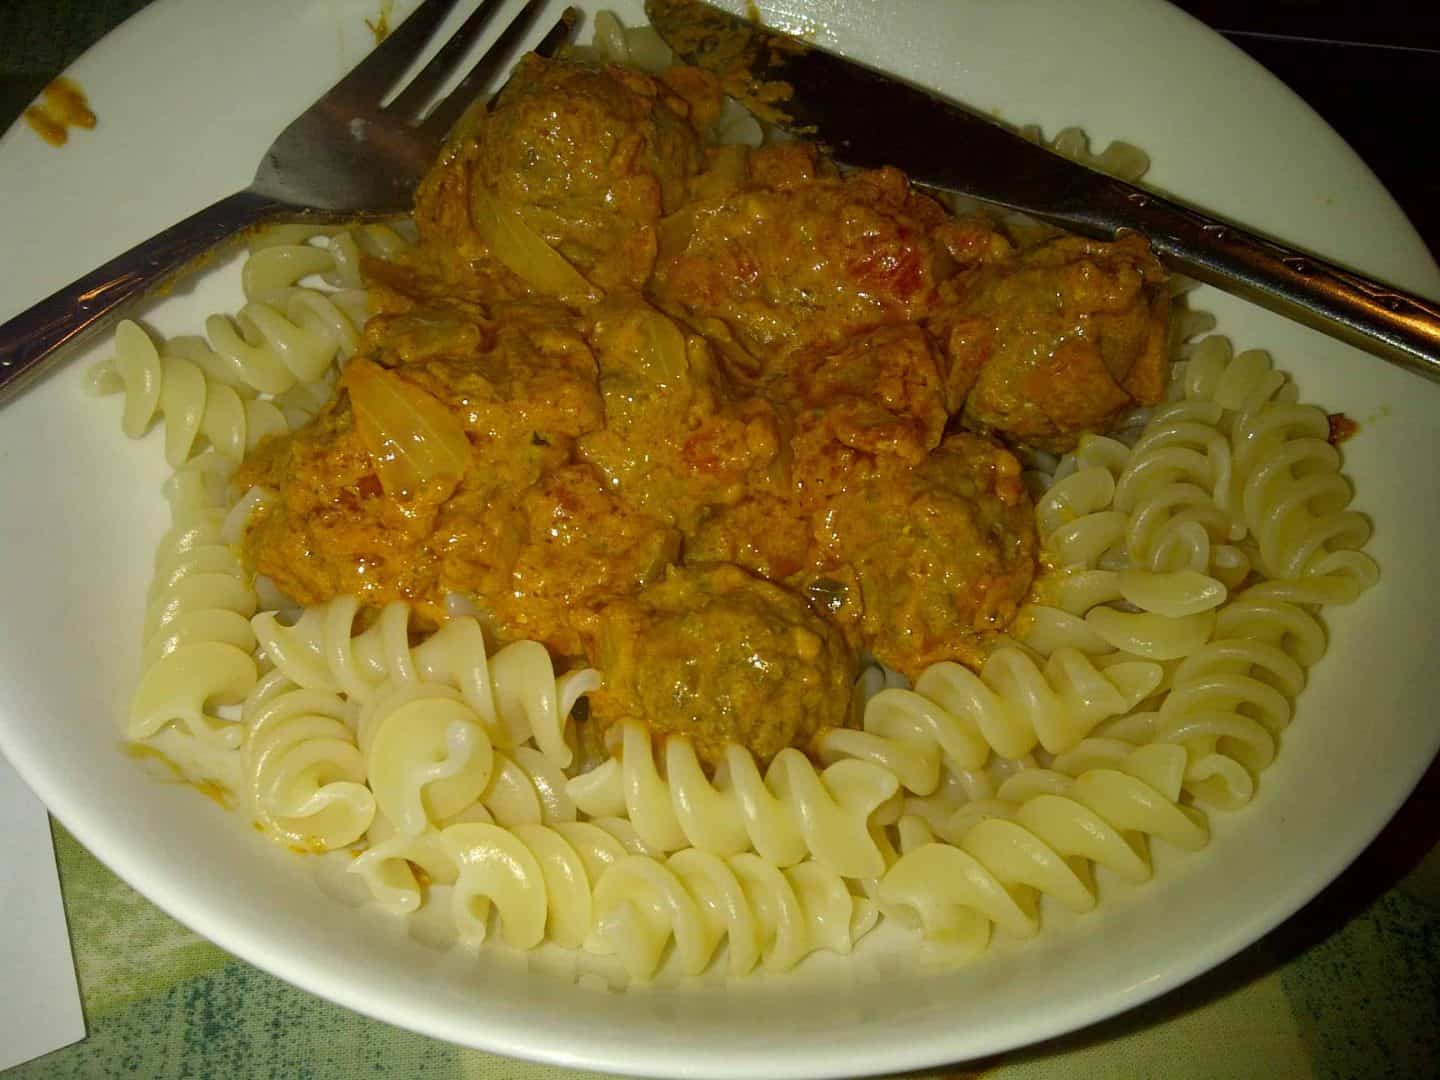 Delicious meatballs from the Black Farmer's Daughter